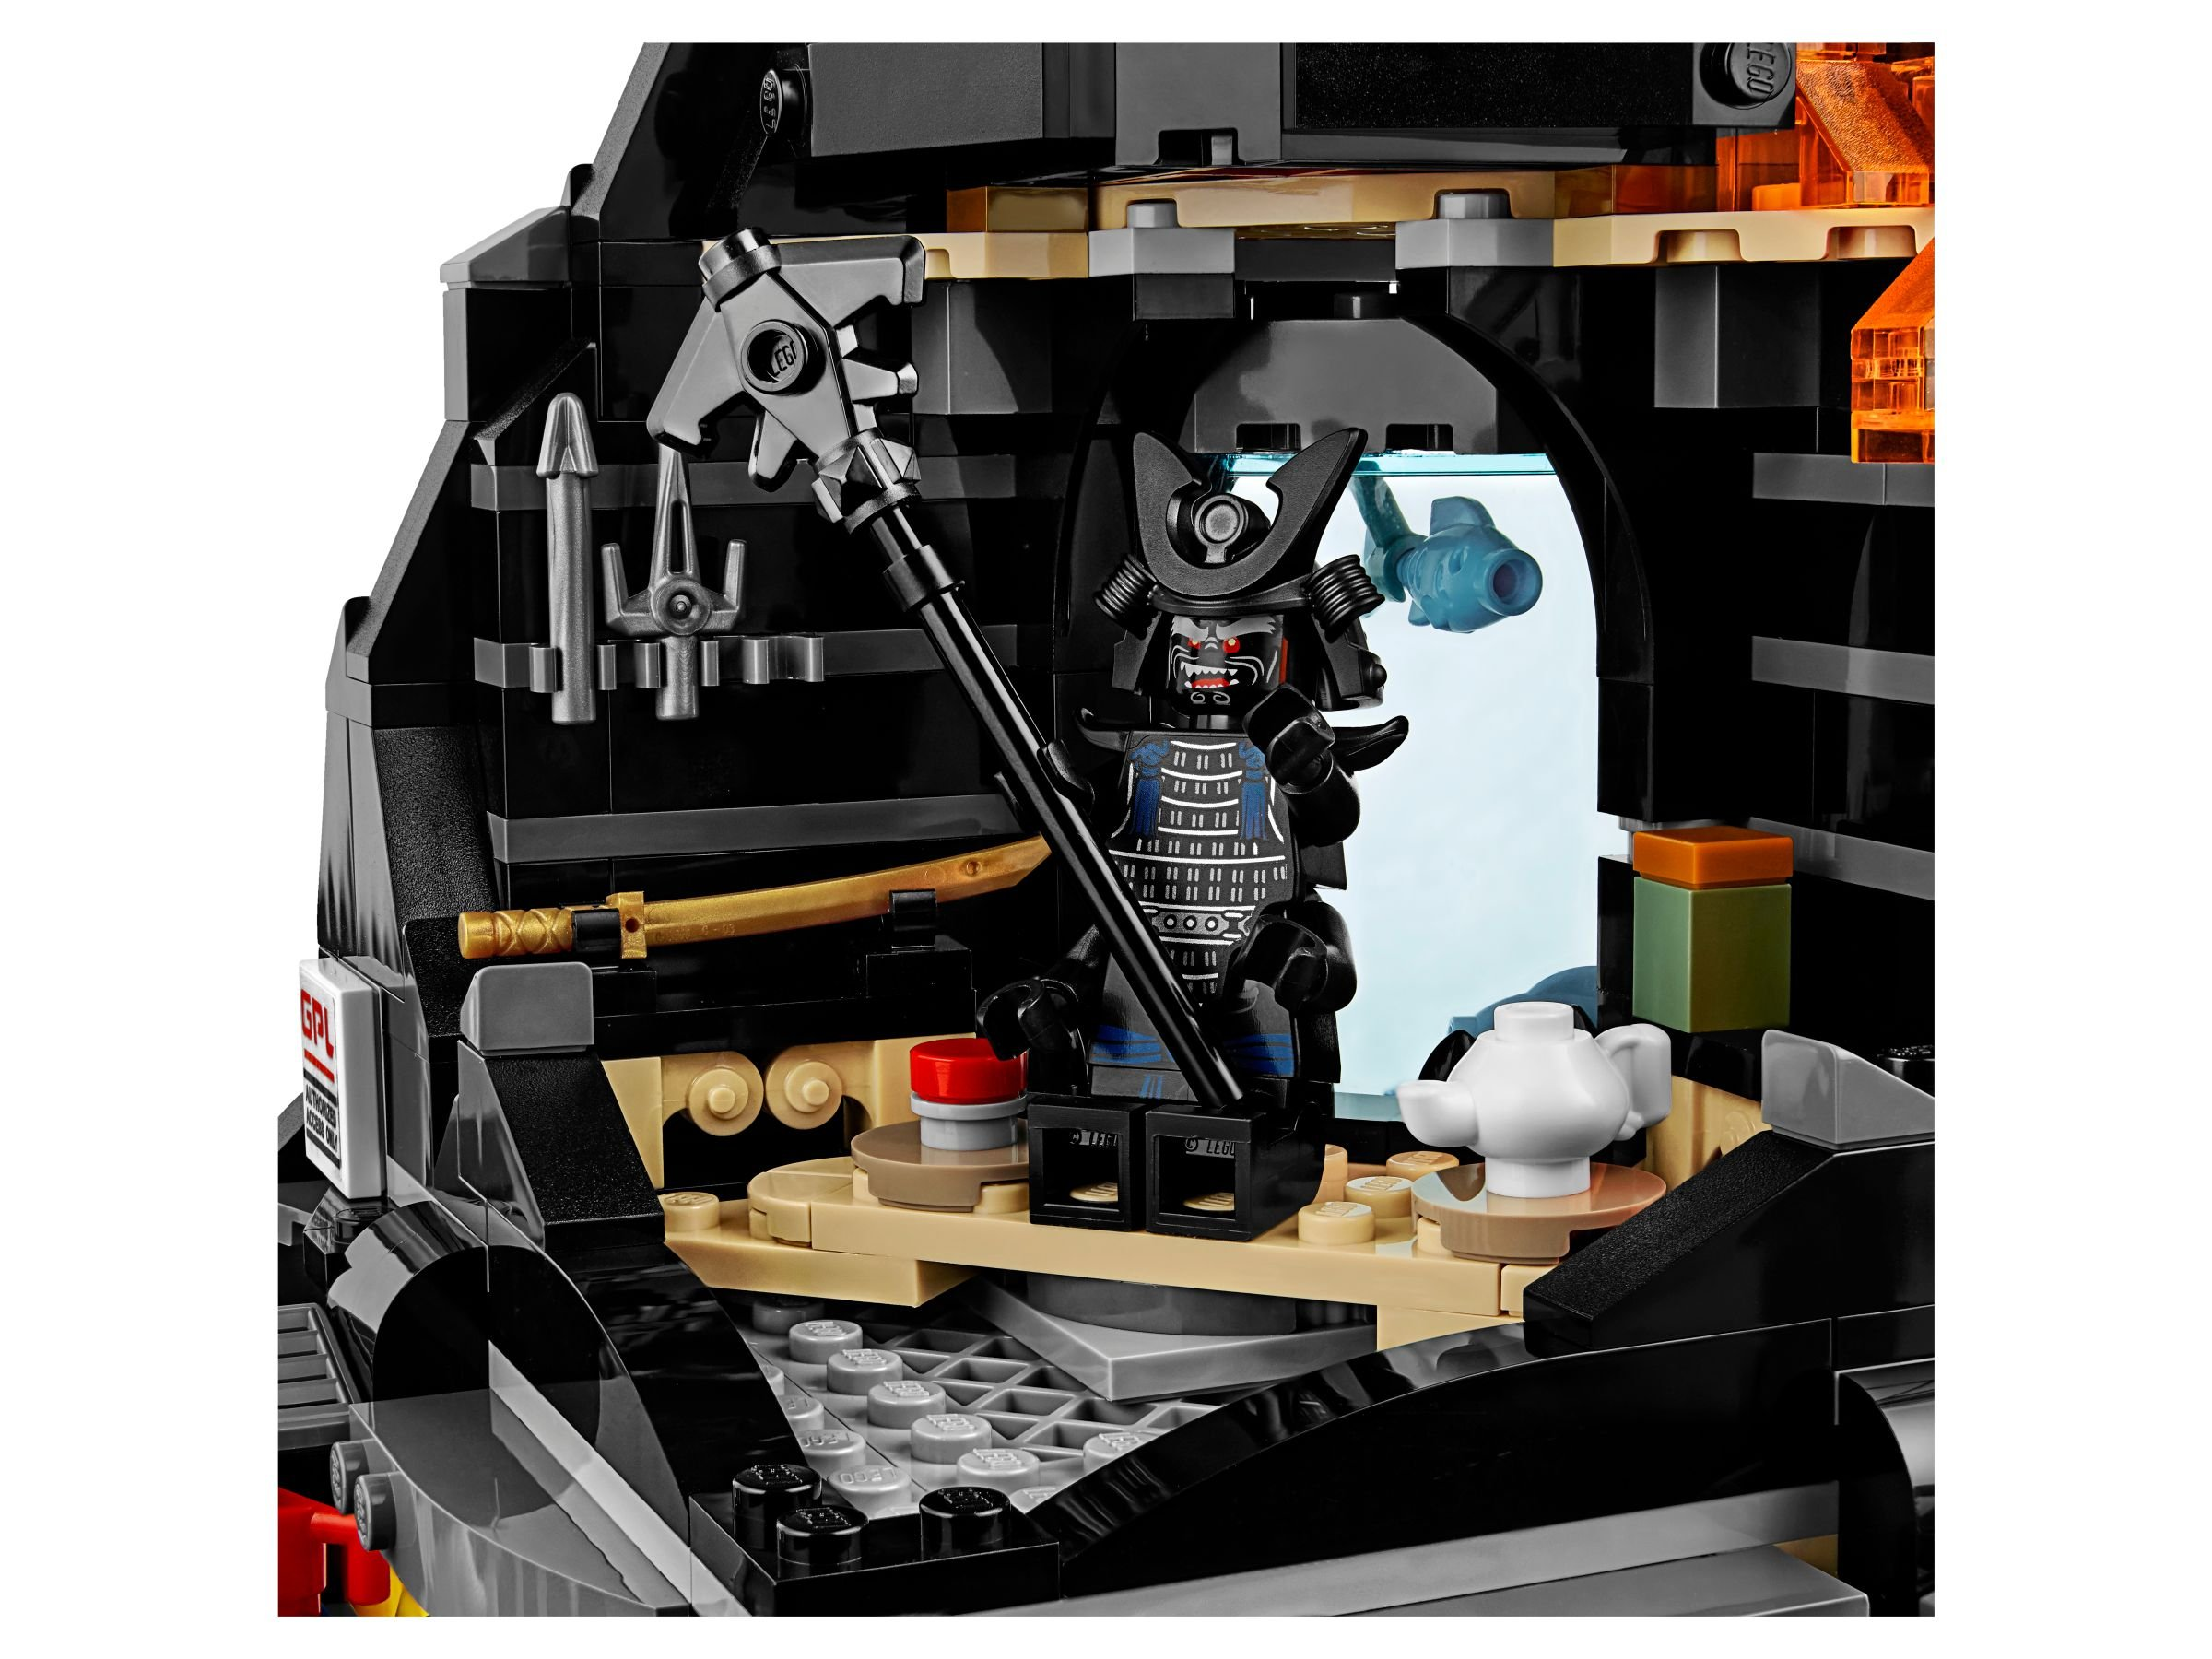 LEGO The LEGO Ninjago Movie 70631 Garmadons Vulkanversteck LEGO_70631_alt4.jpg